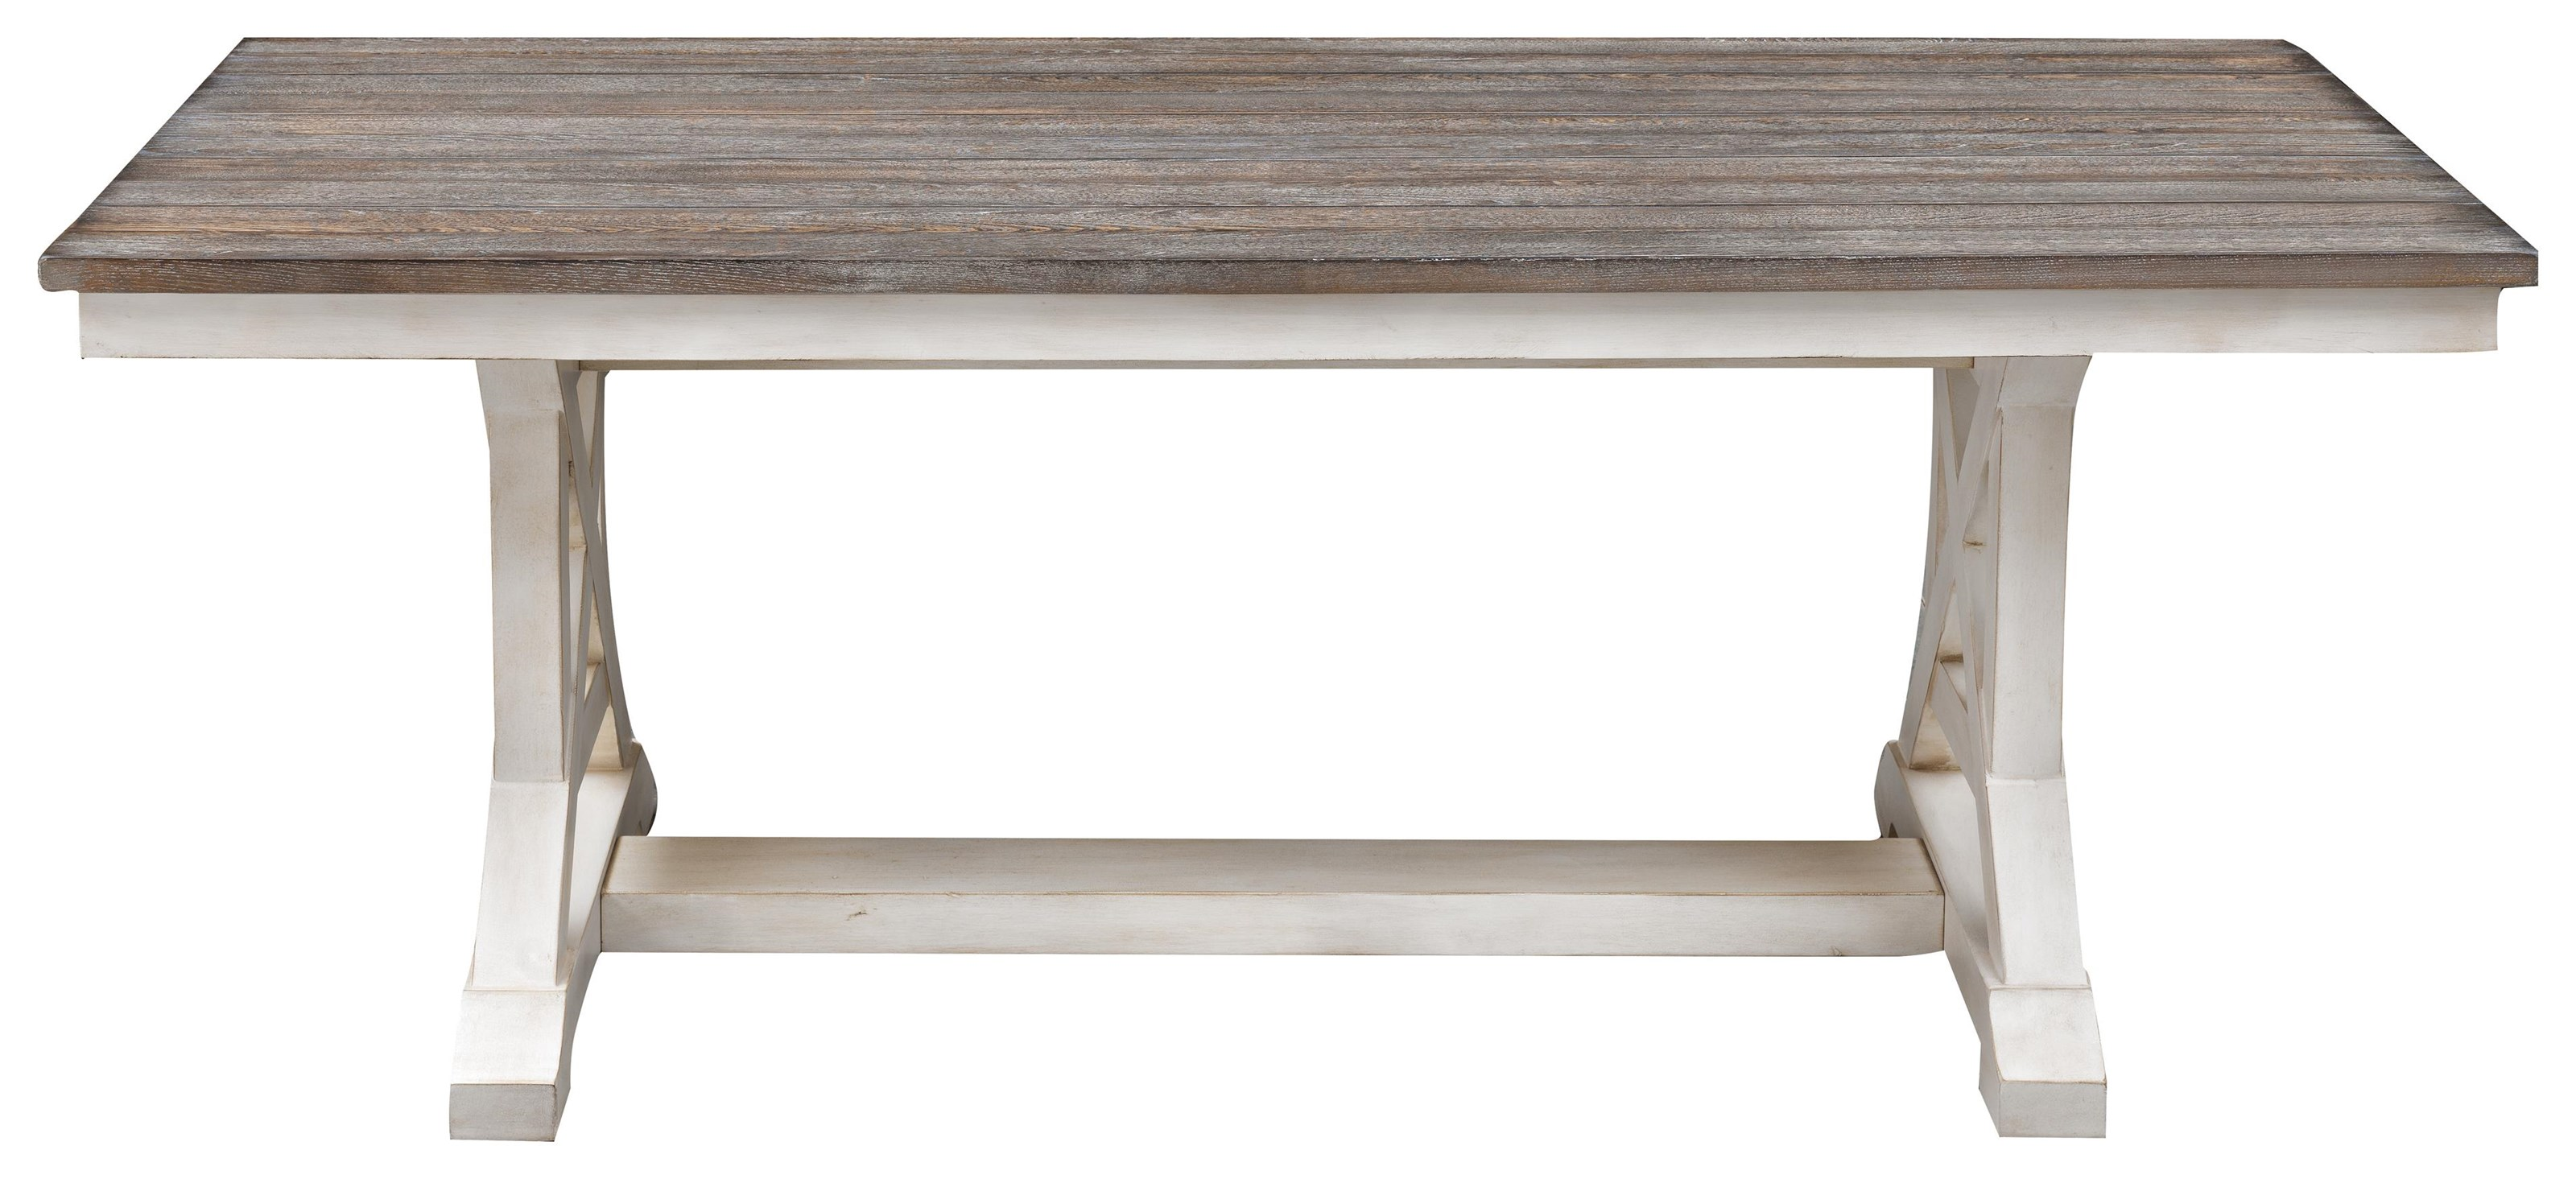 Bar Harbor II Dining Table by Coast to Coast Imports at HomeWorld Furniture